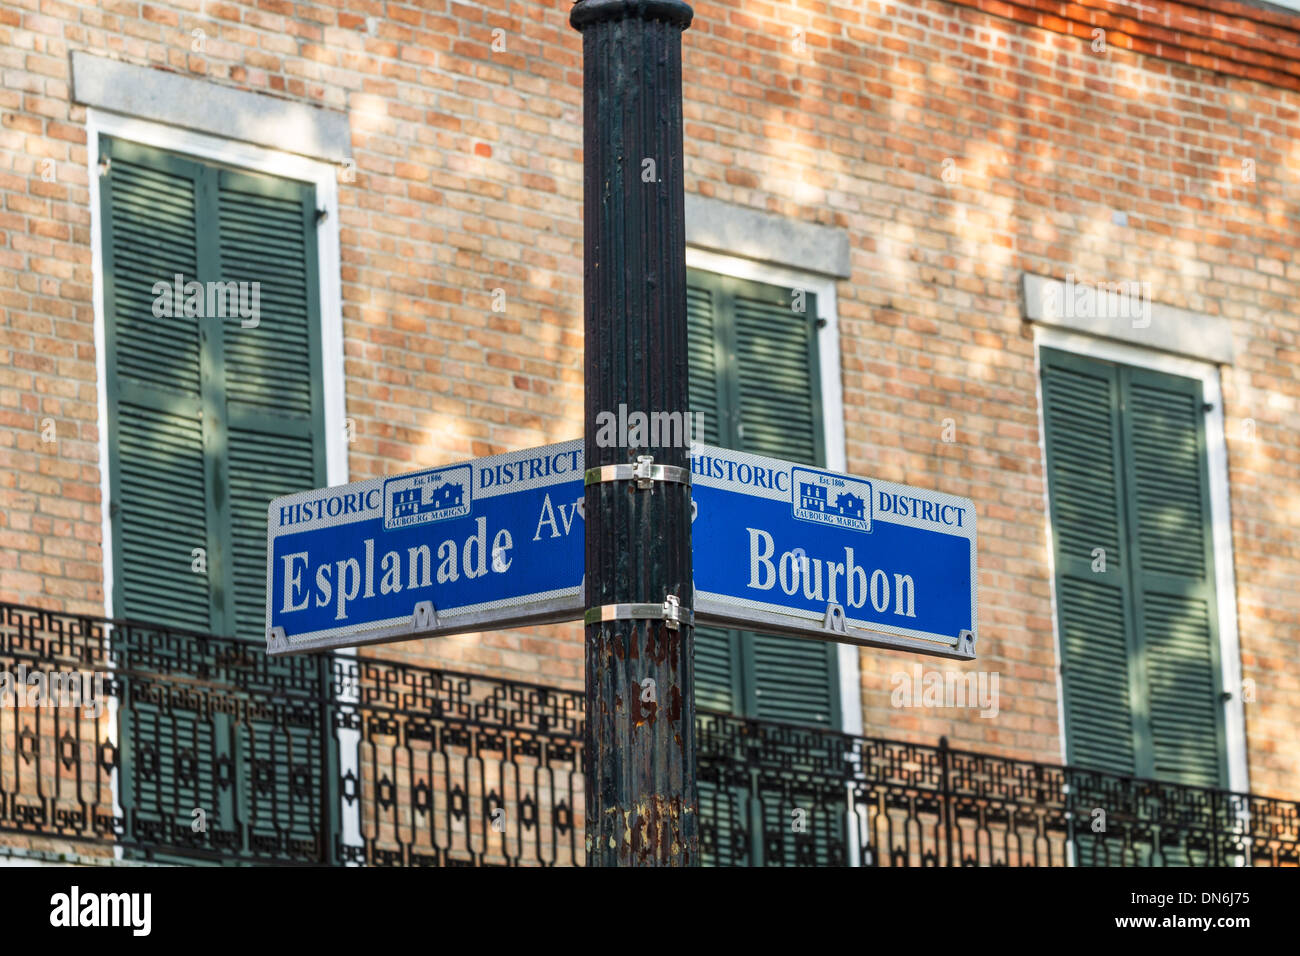 A street sign at the corner of Bourbon St. and Esplanade Ave. against a brick wall in the French Quarter of New Orleans, LA - Stock Image